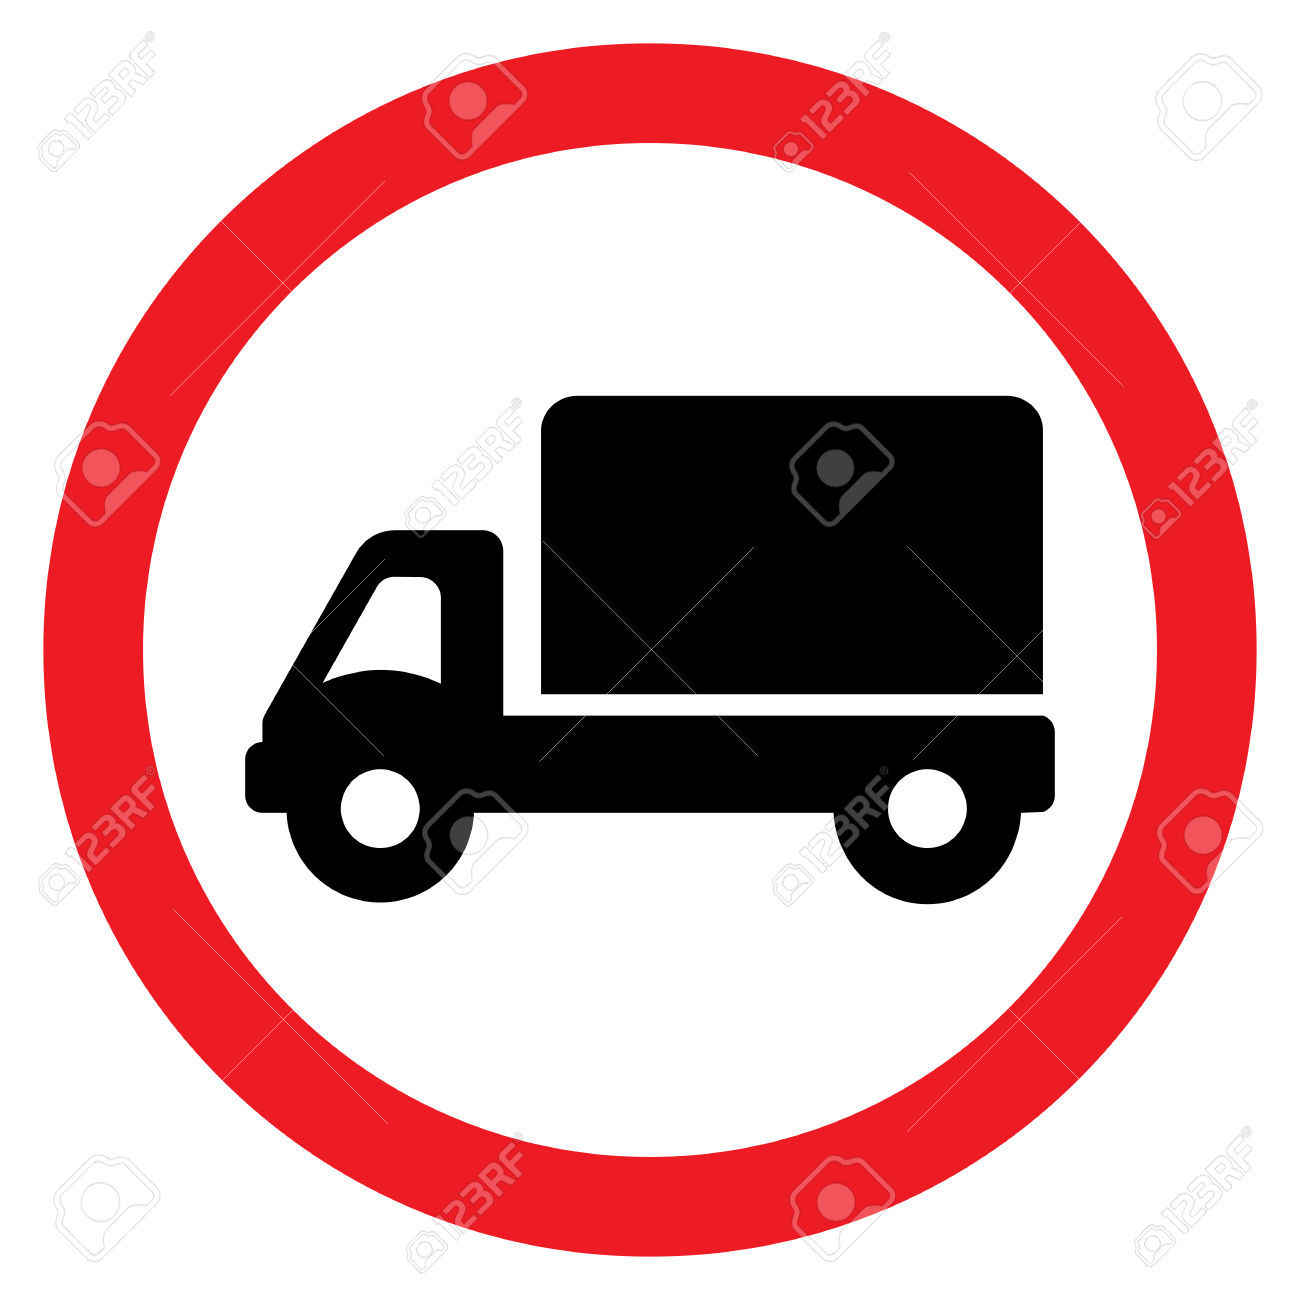 Truck Road Sign Royalty Free Cliparts, Vectors, And Stock.